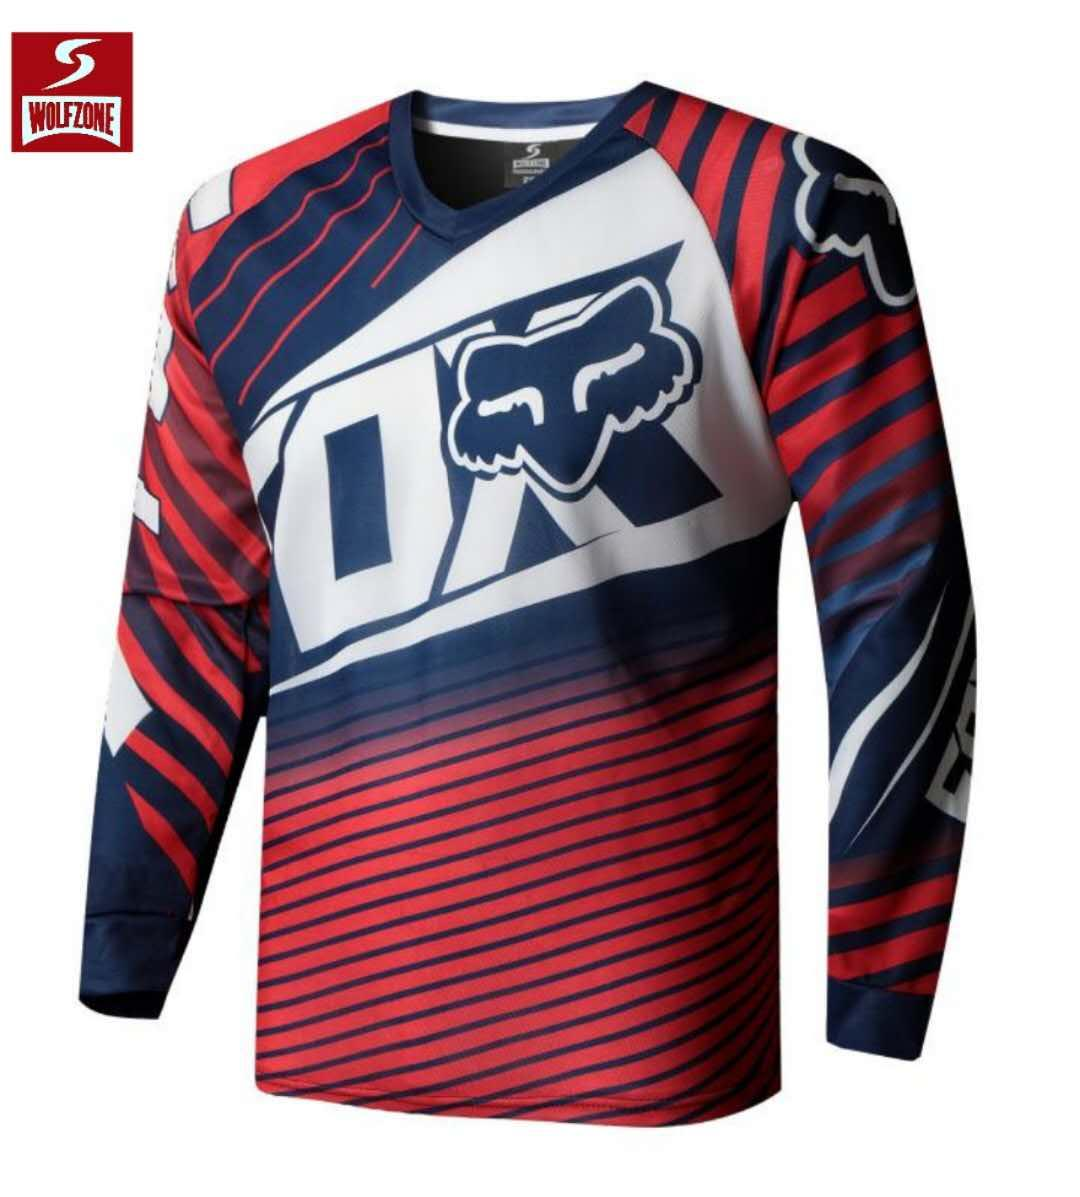 Wolf Zone Spandex Fox Longsleeve Men s Sportswear Quick DryFortress Cycling  Mountain Bike Motocross Motorcycle MTB dc5ce31f1